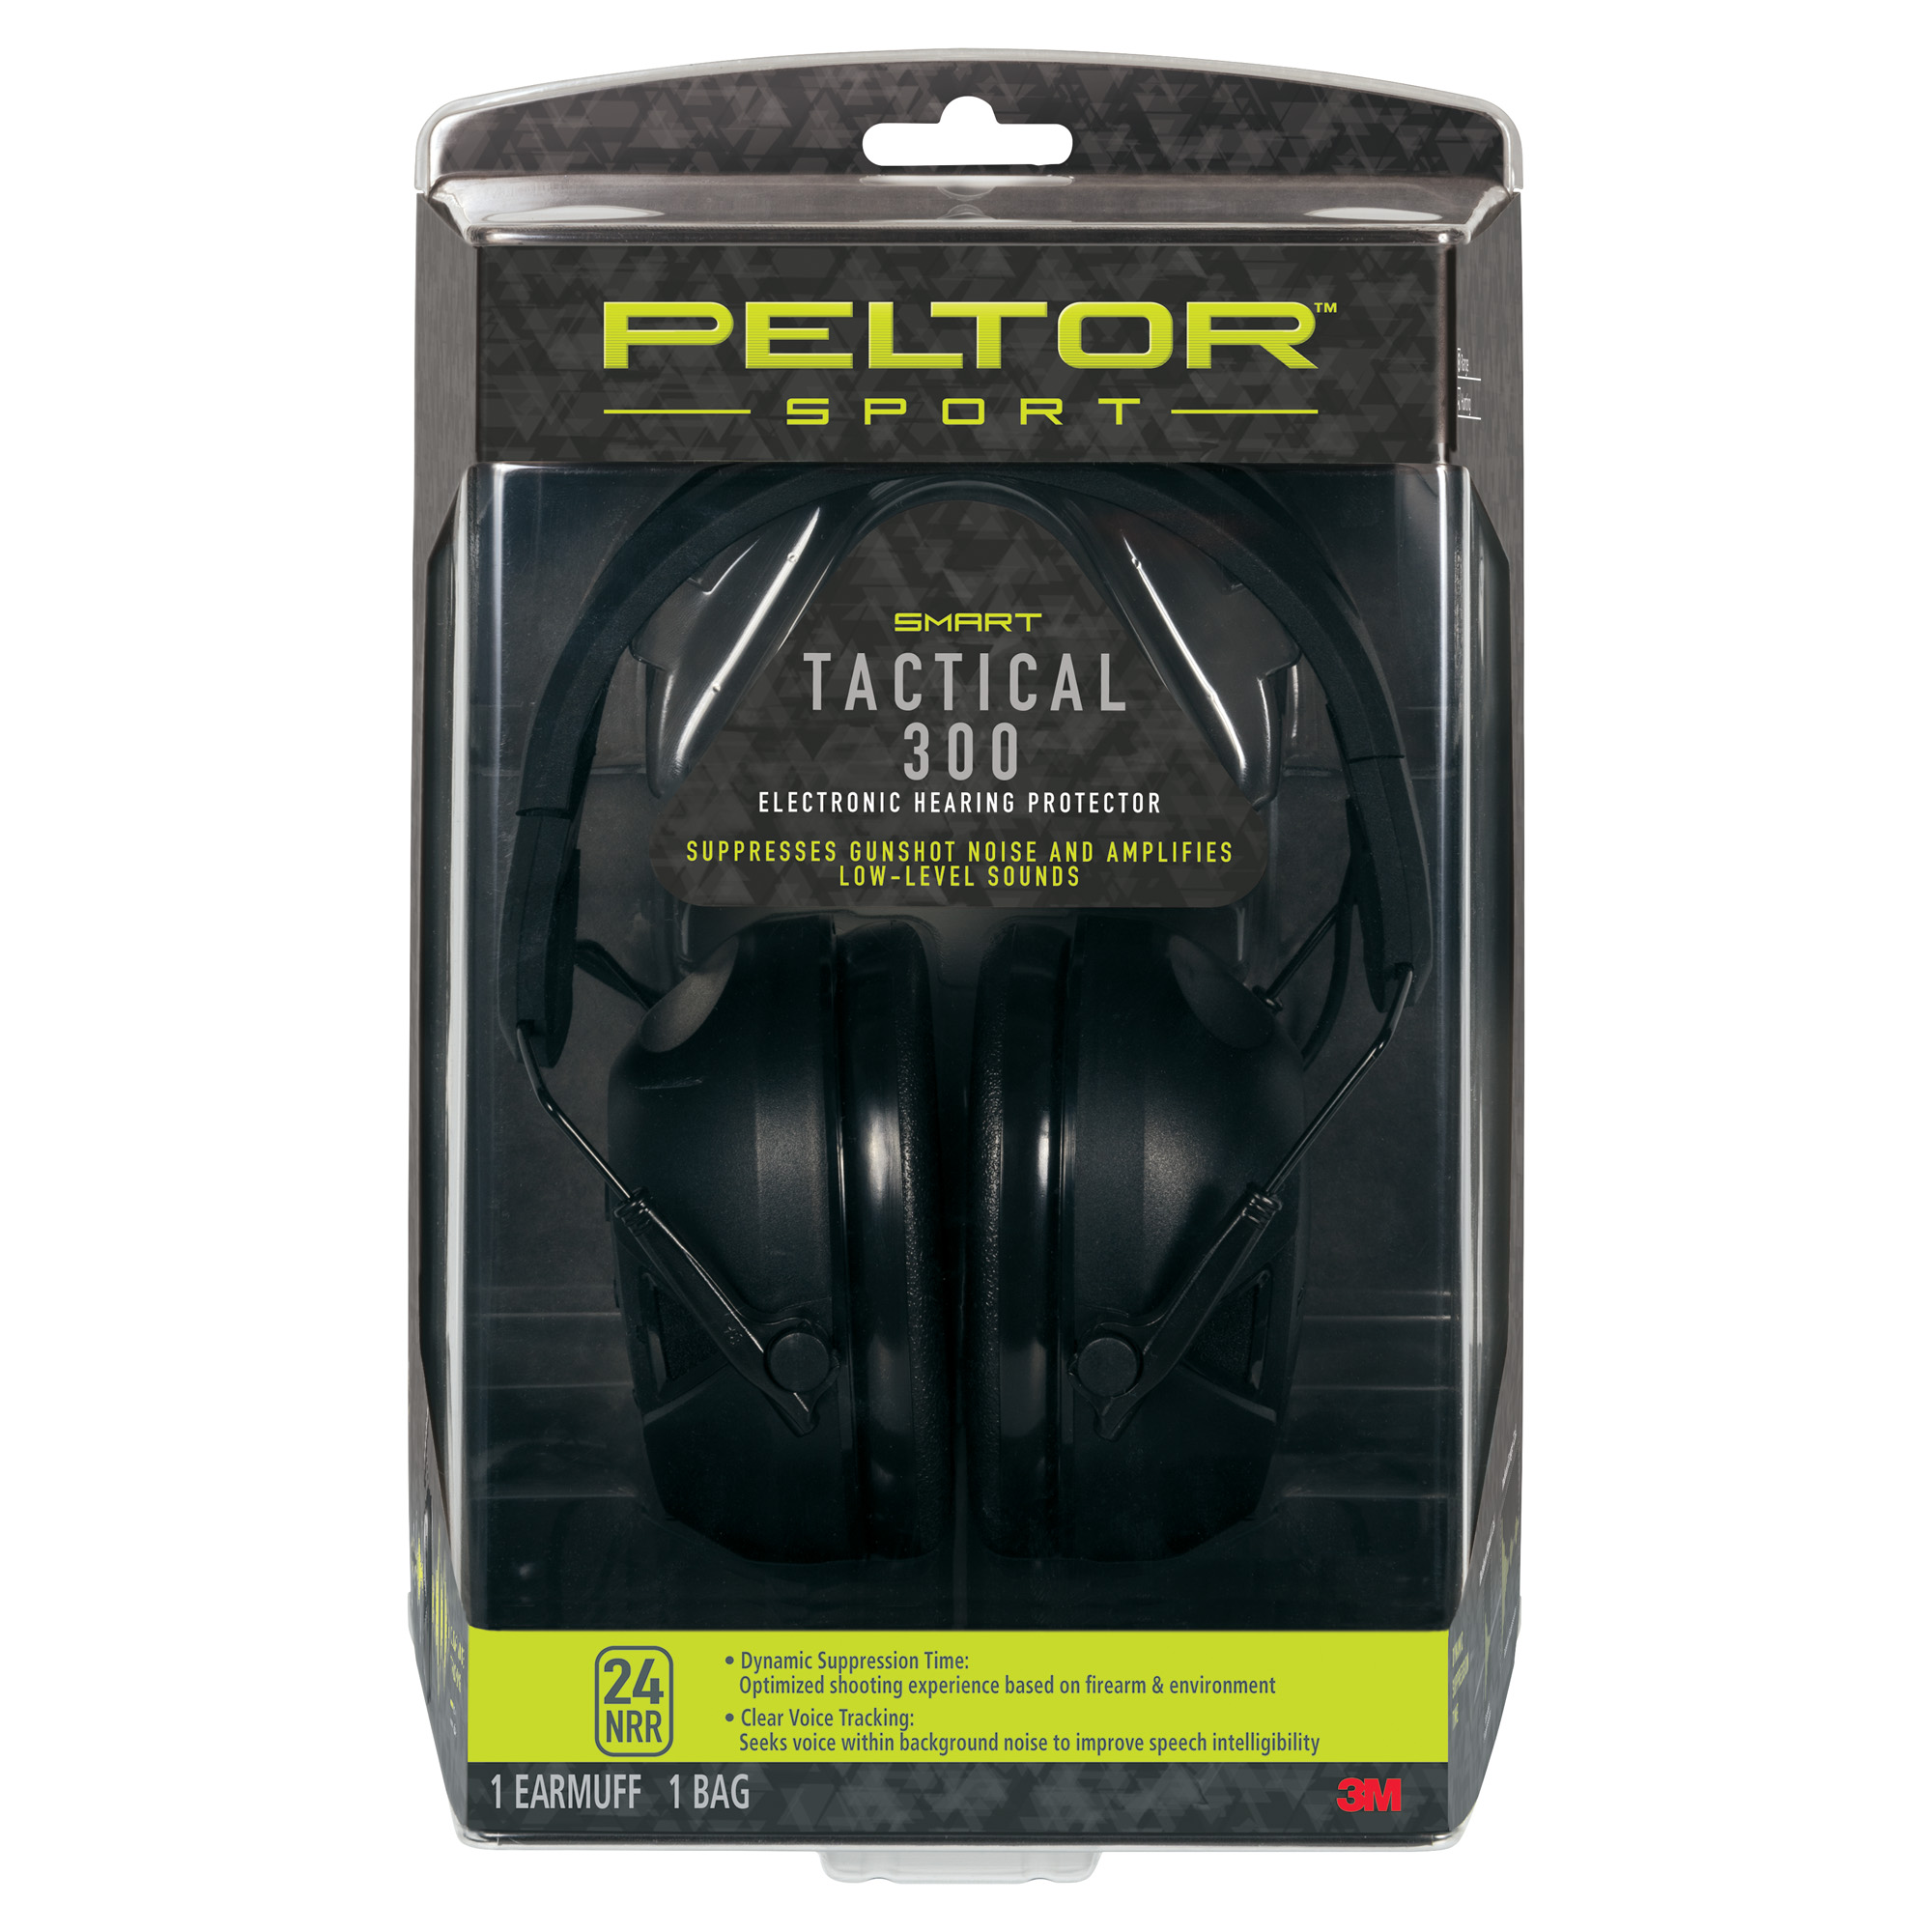 Peltor Sport Tac 300 Digital Nrr24